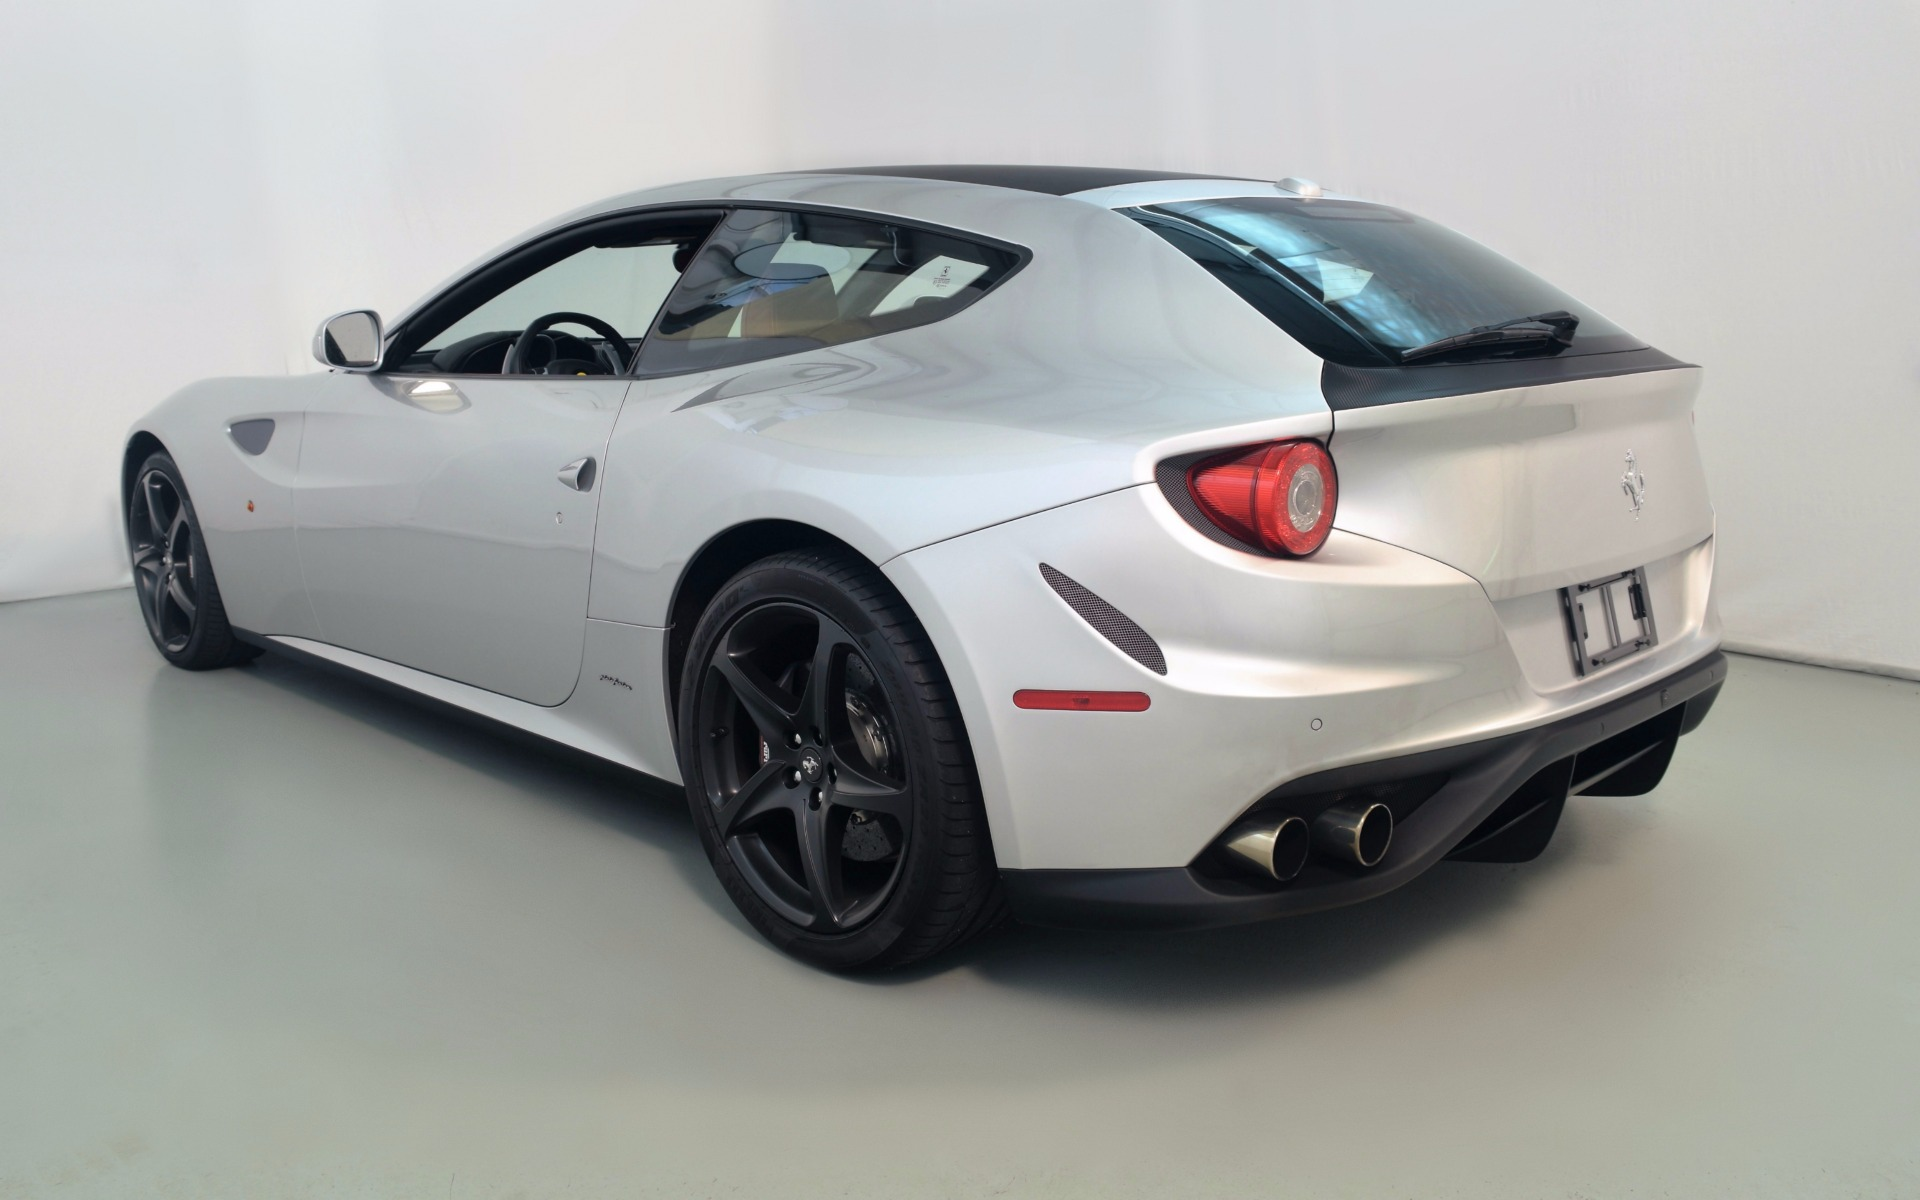 2014 Ferrari 458 Spider >> 2014 Ferrari FF For Sale in Norwell, MA 201604 | Mclaren ...